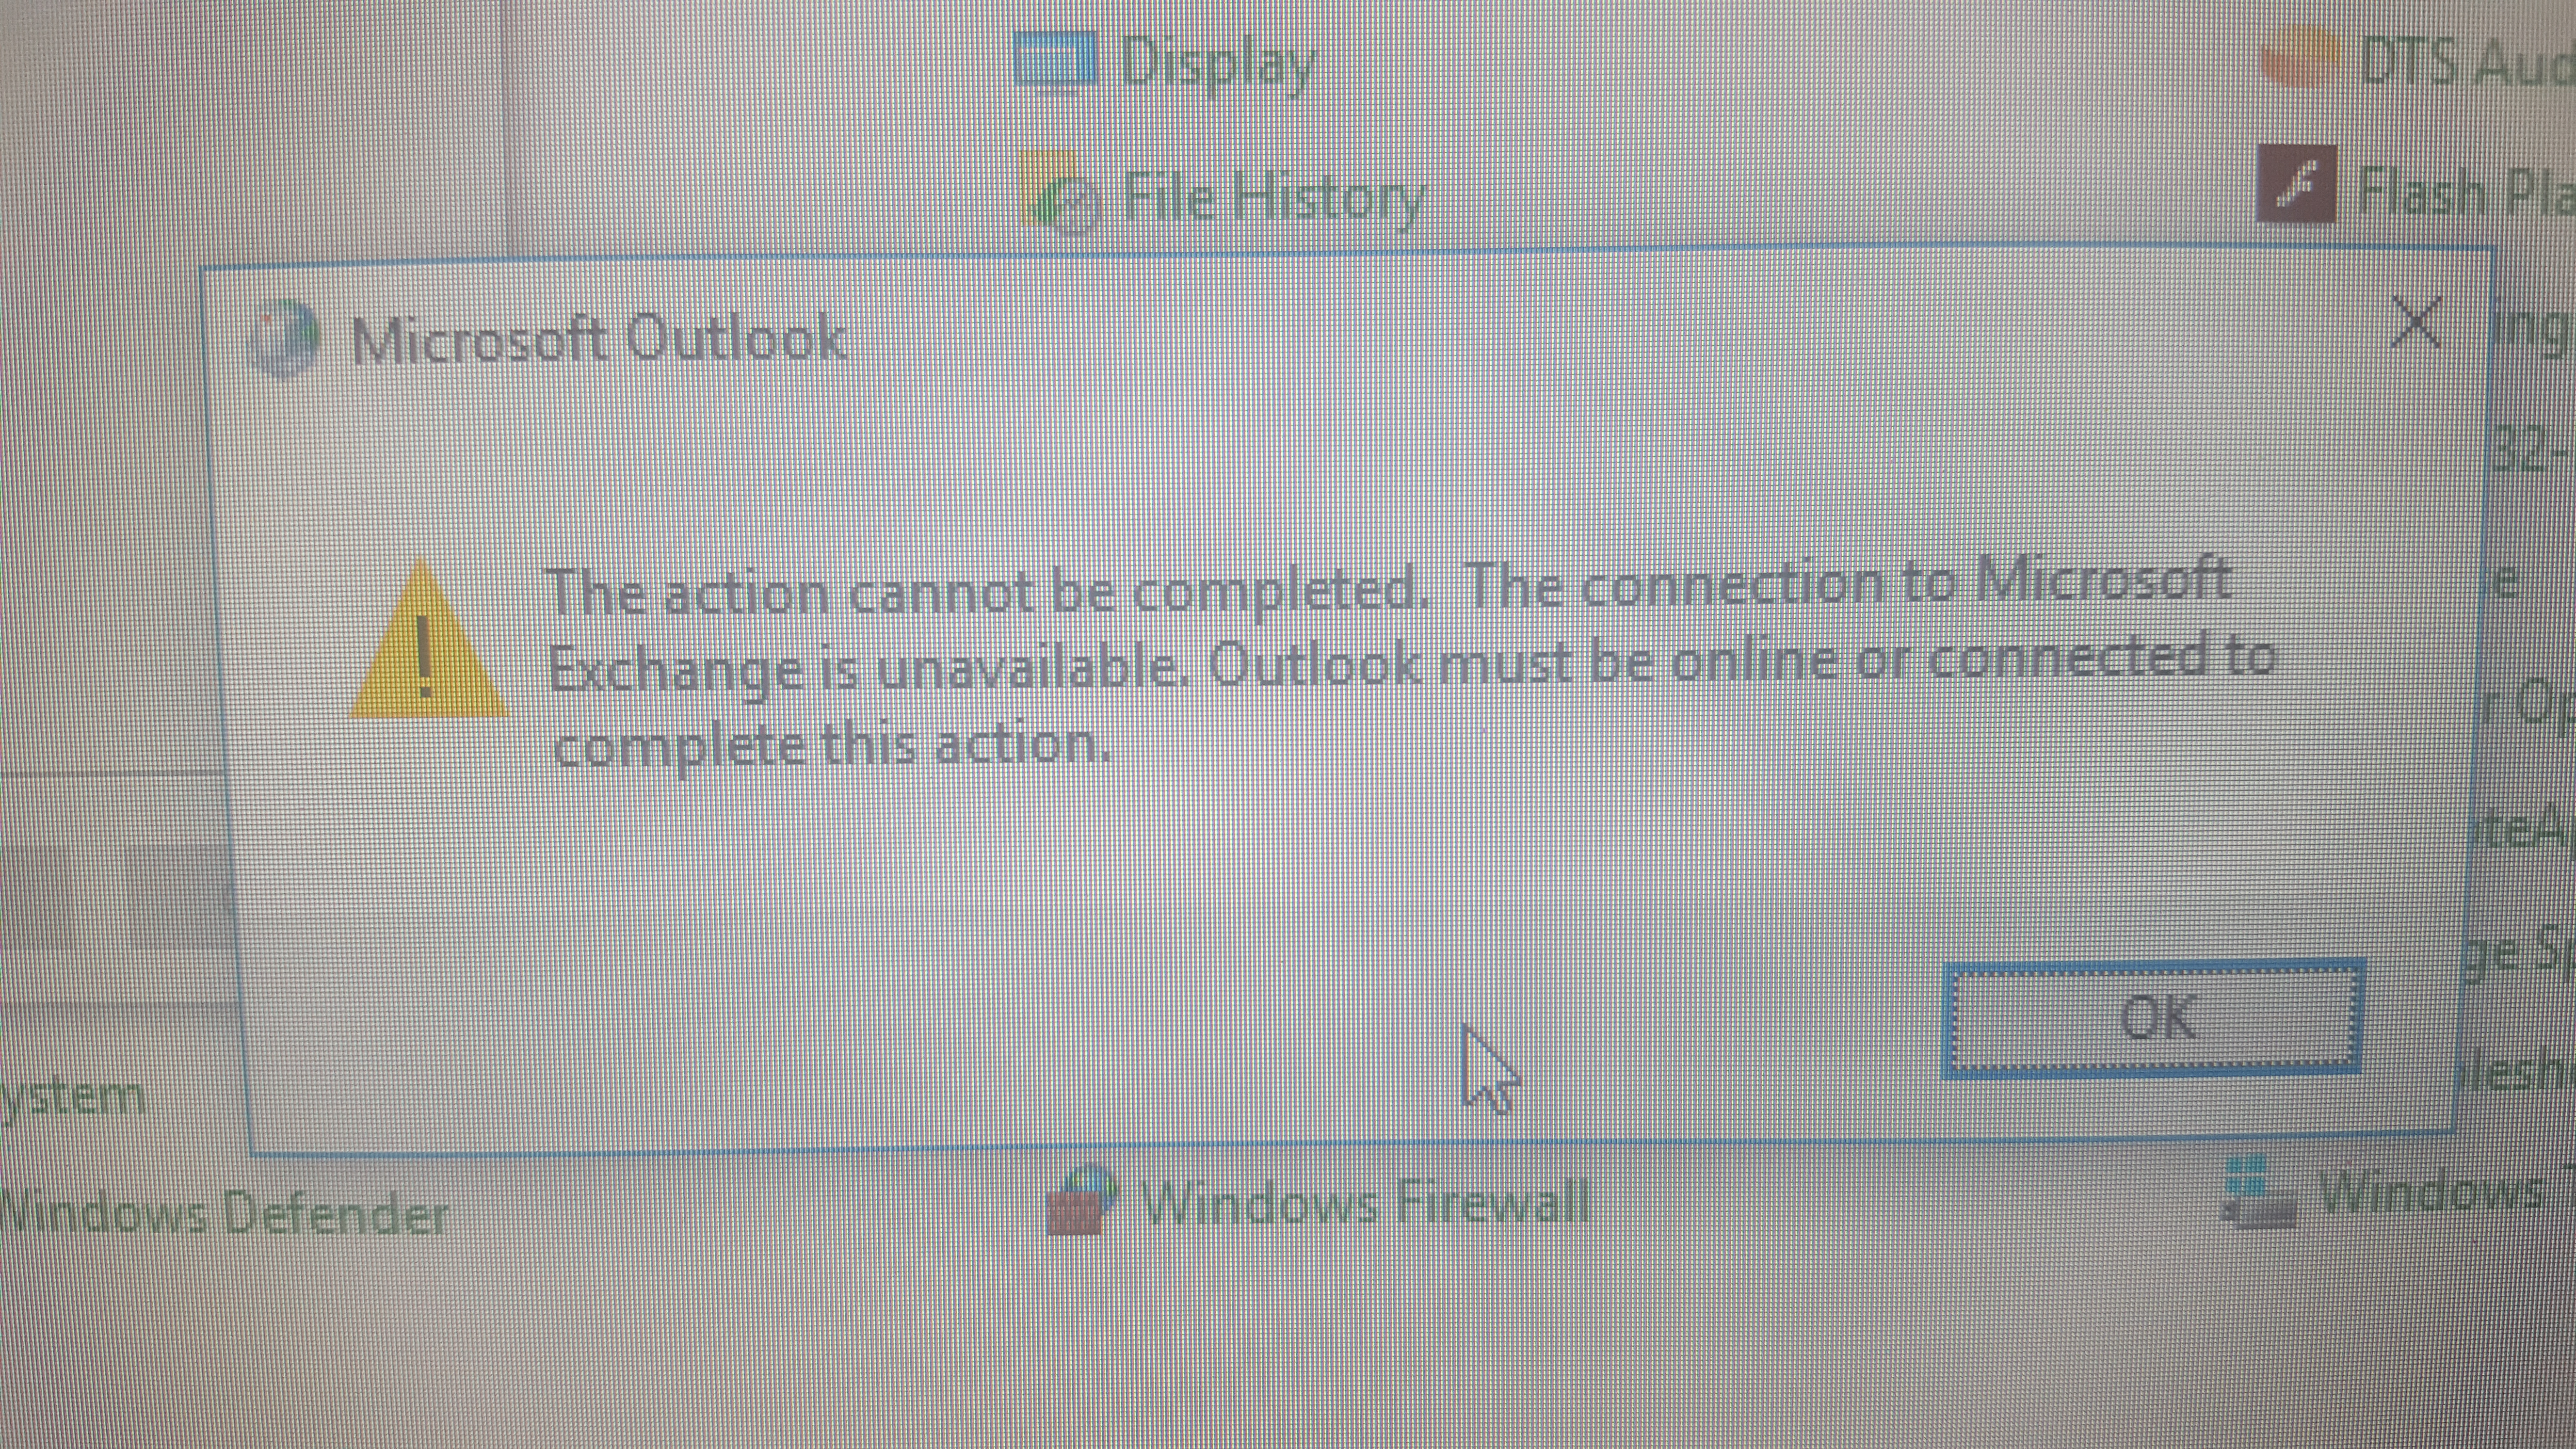 The connection to microsoft exchange is unavailable outlook must be online